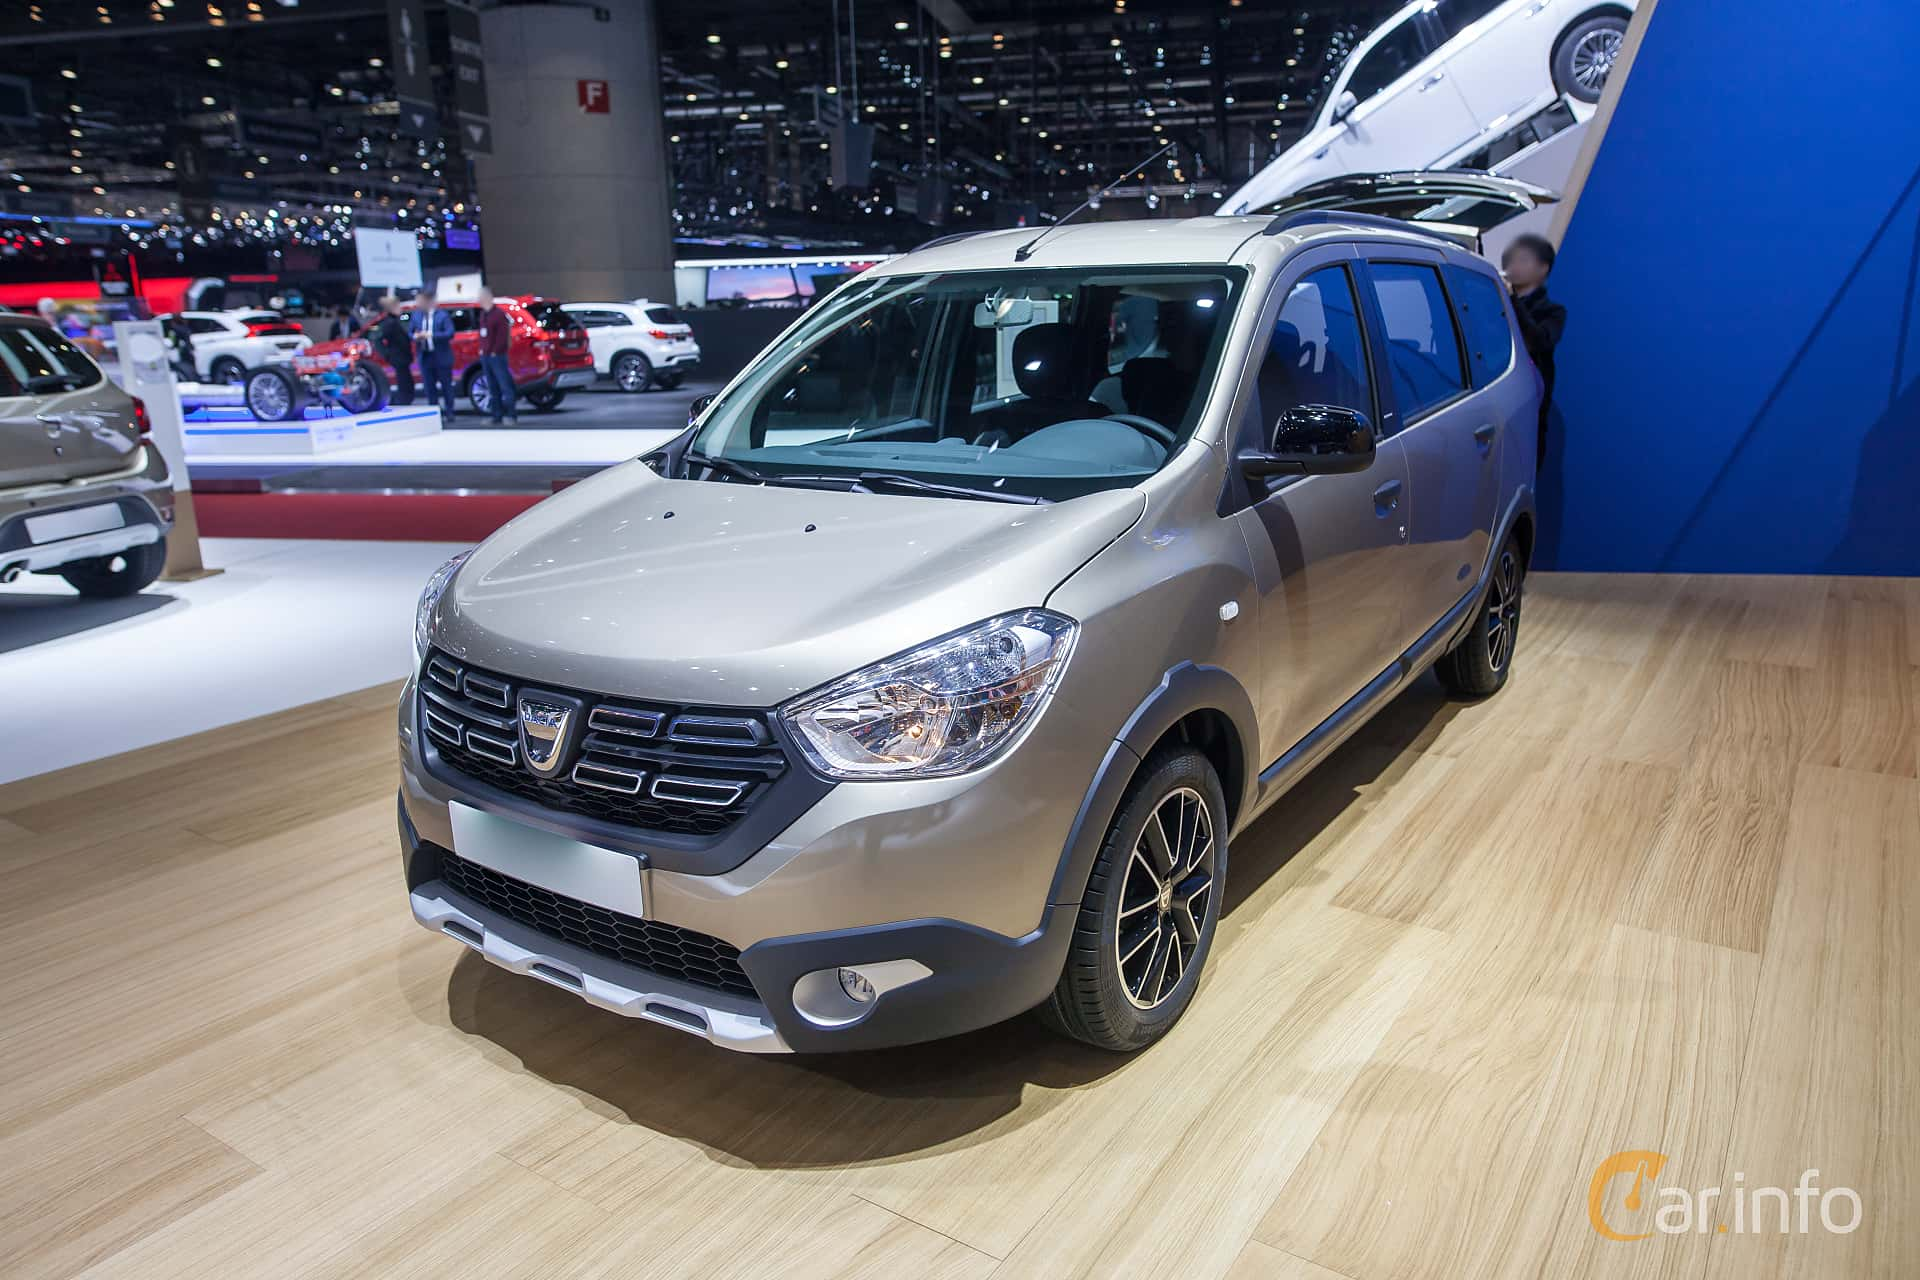 Front/Side  of Dacia Lodgy Stepway 1.5 dCi Manual, 107ps, 2018 at Geneva Motor Show 2018